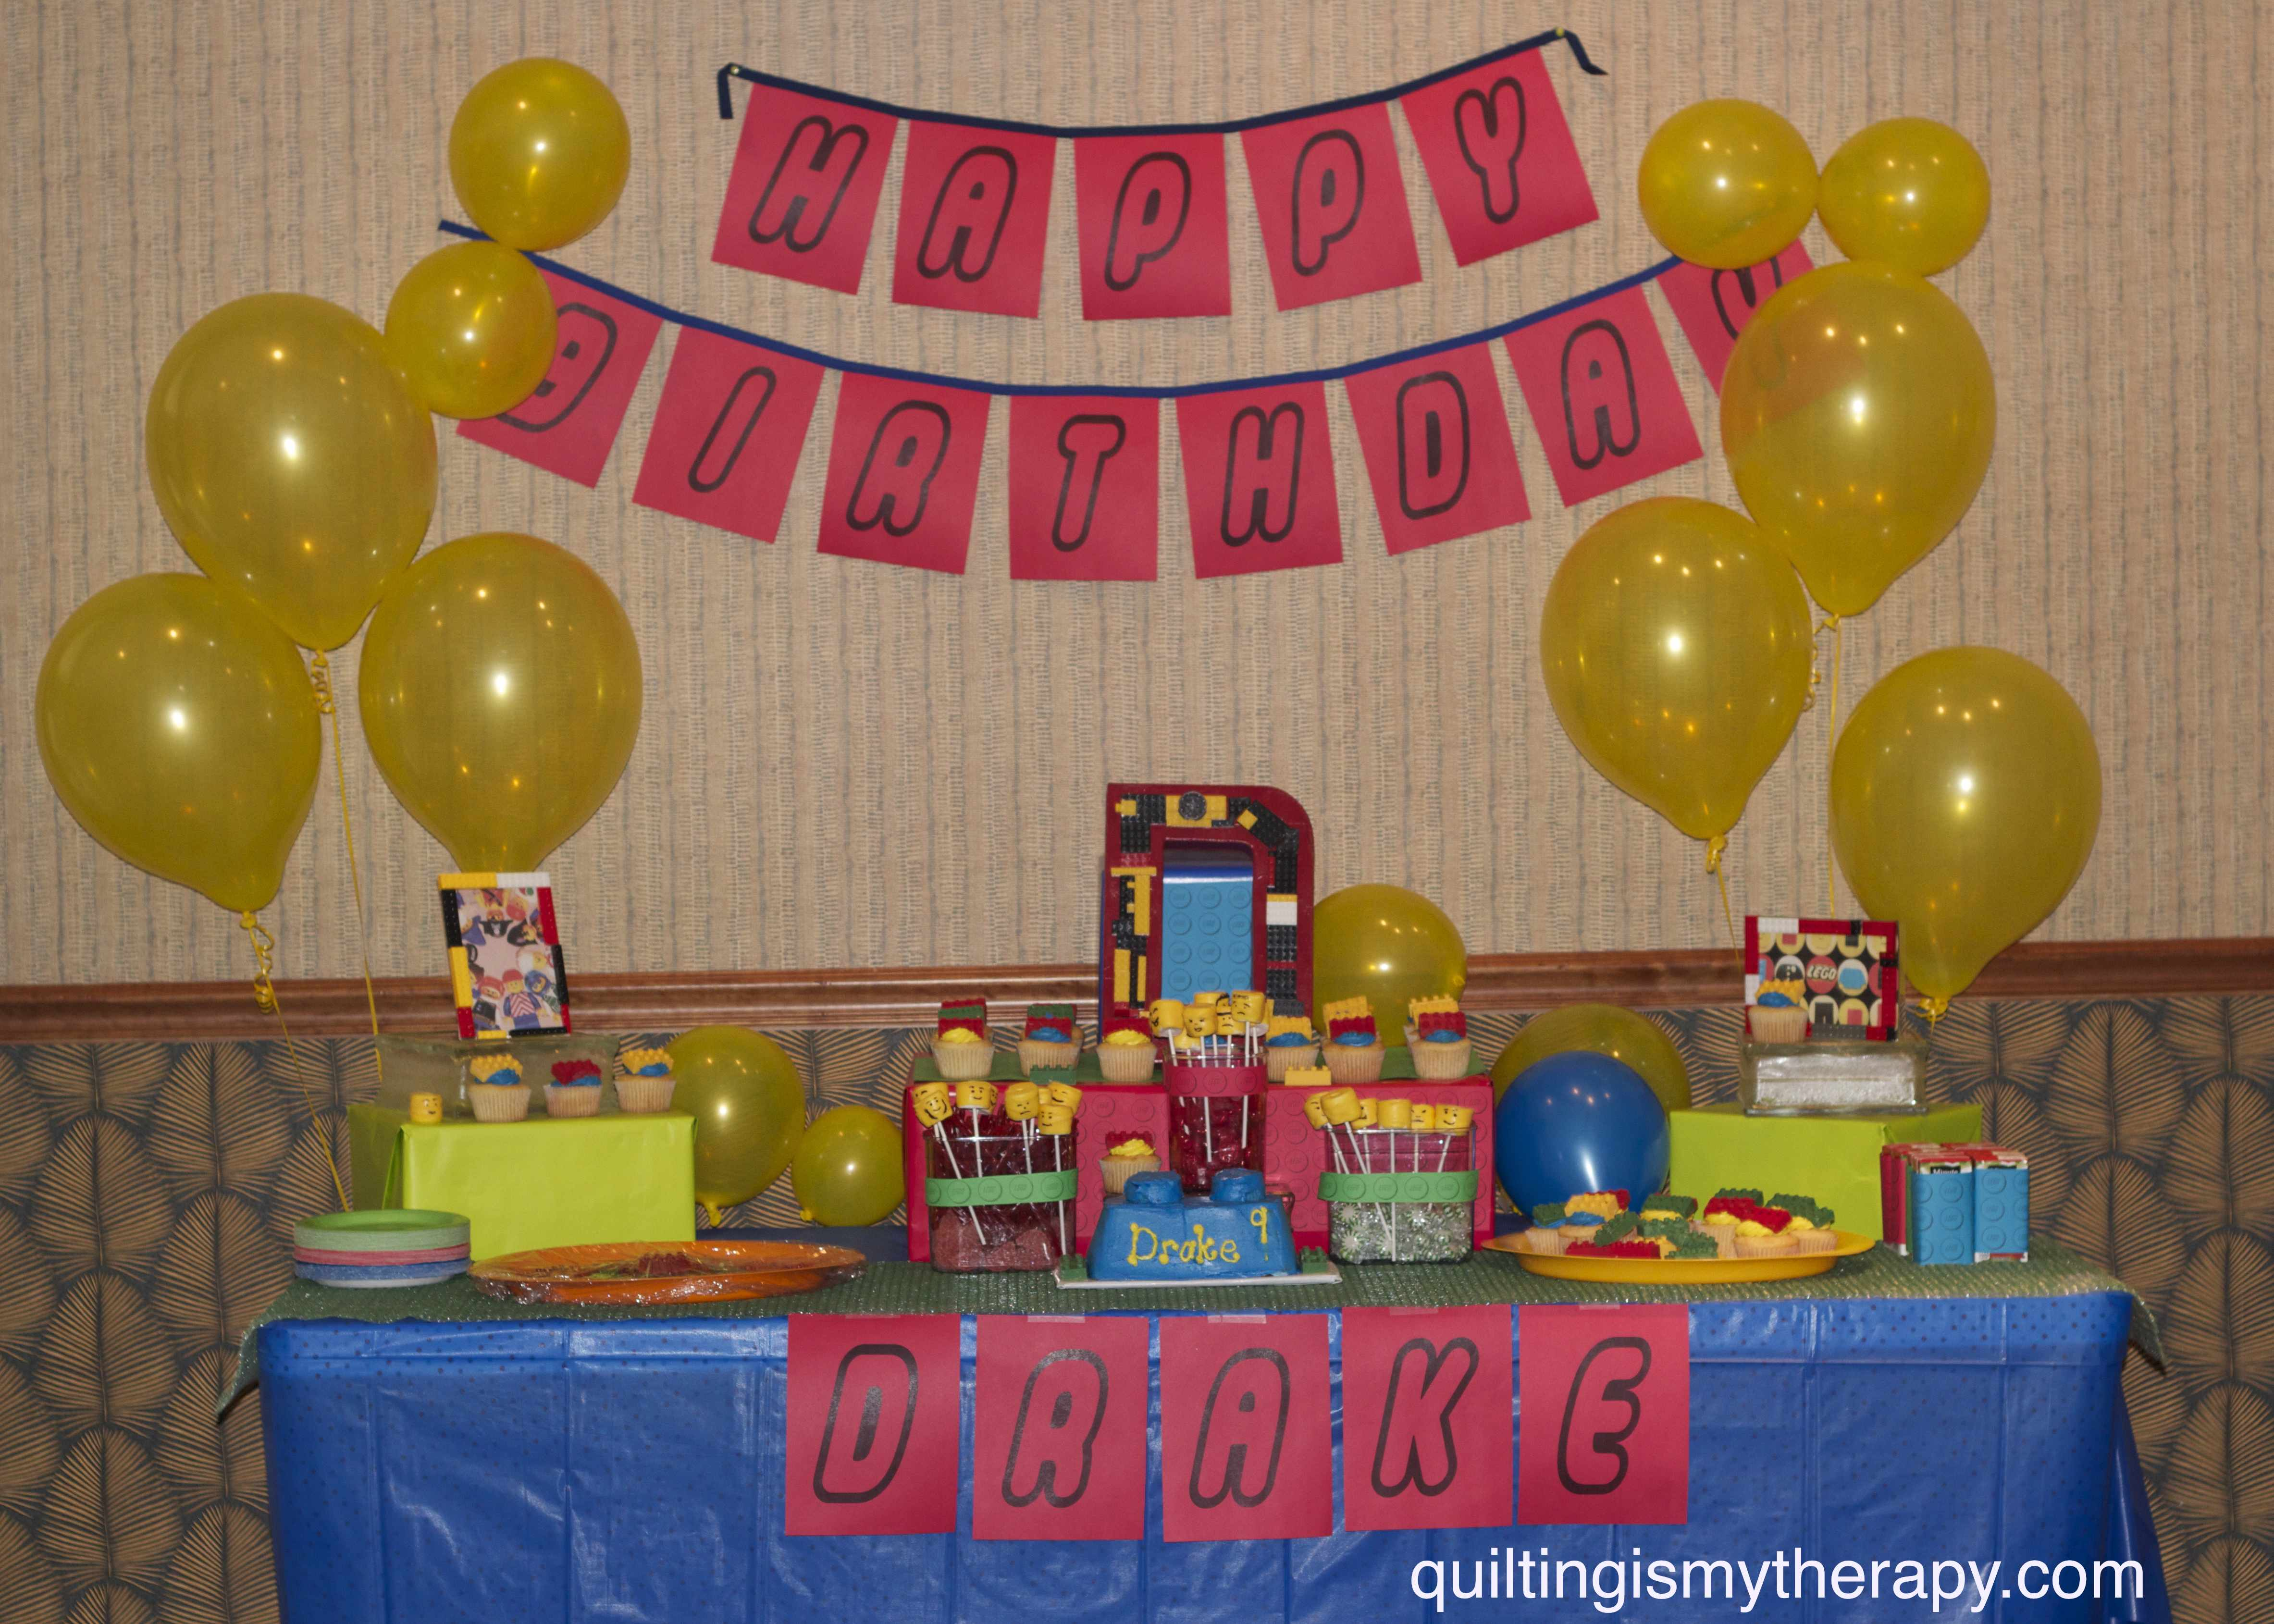 Lego Birthday Party Quiltingismytherapys Blog